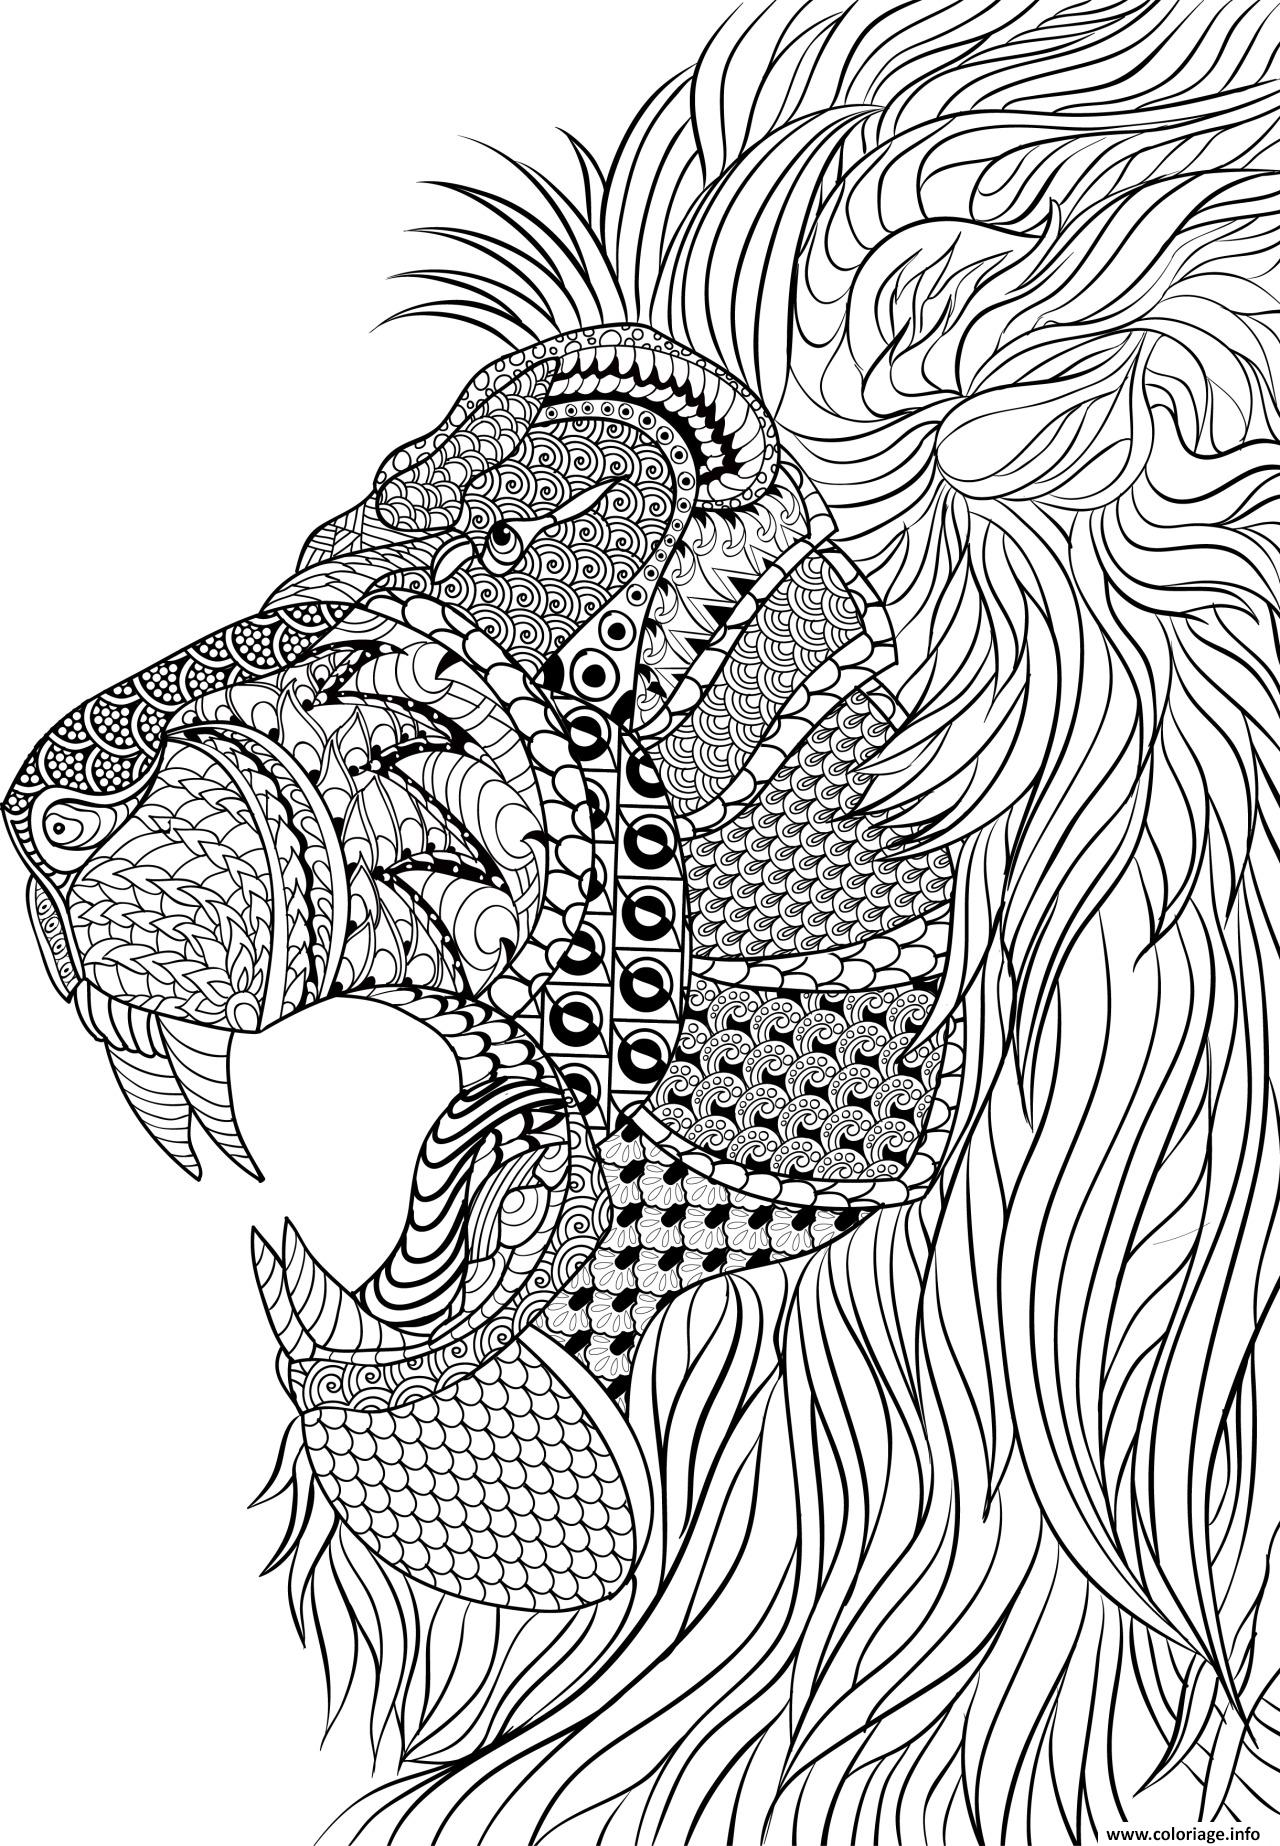 Coloriage lion adulte anti stress dessin - Coloriage anti stress a imprimer ...